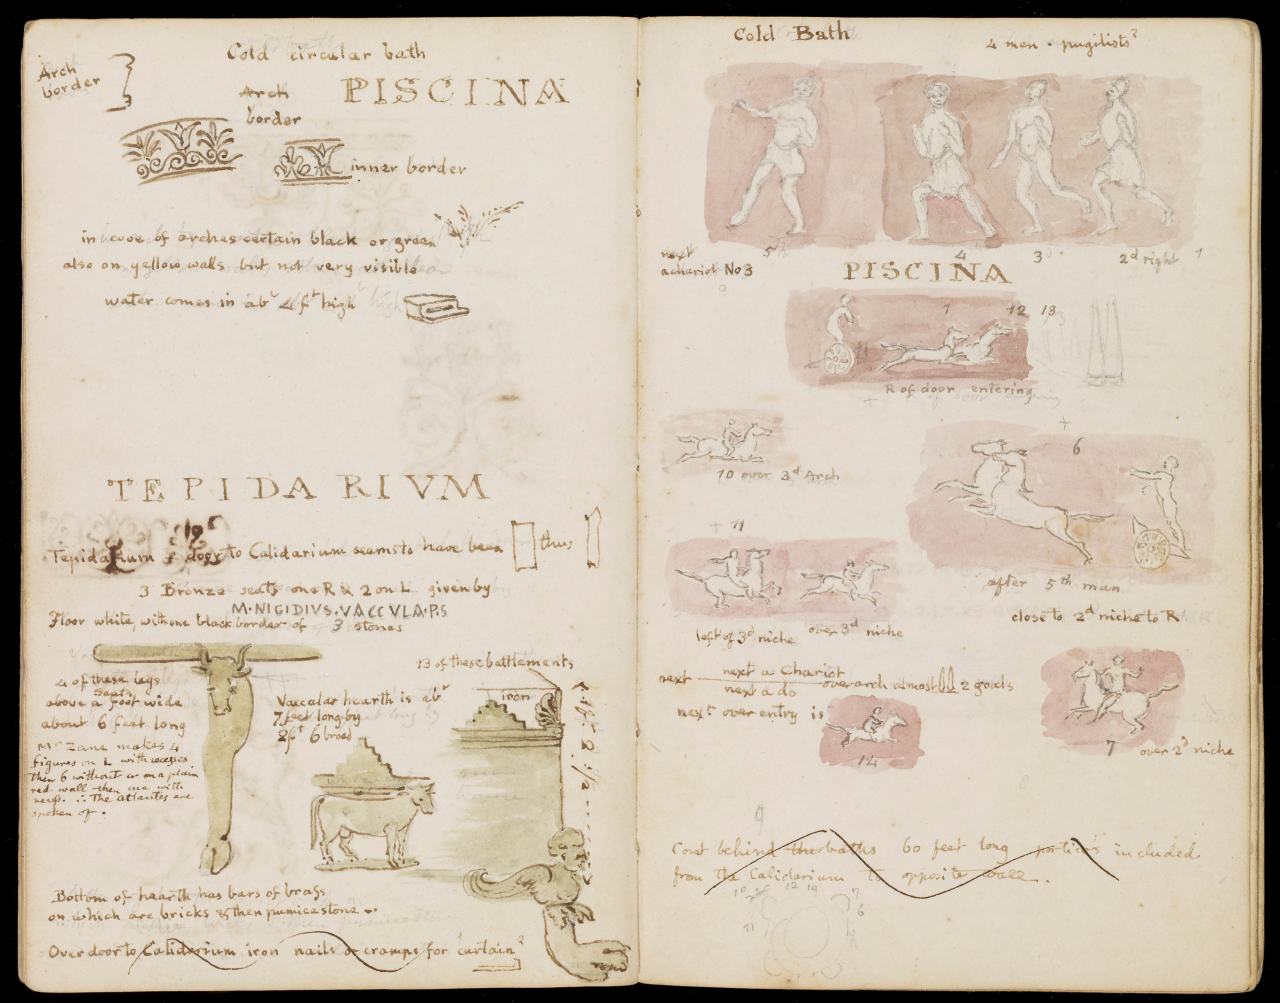 Illustration from Sir William Gell's 1830 Pompeii sketchbook (via Getty Research Institute)